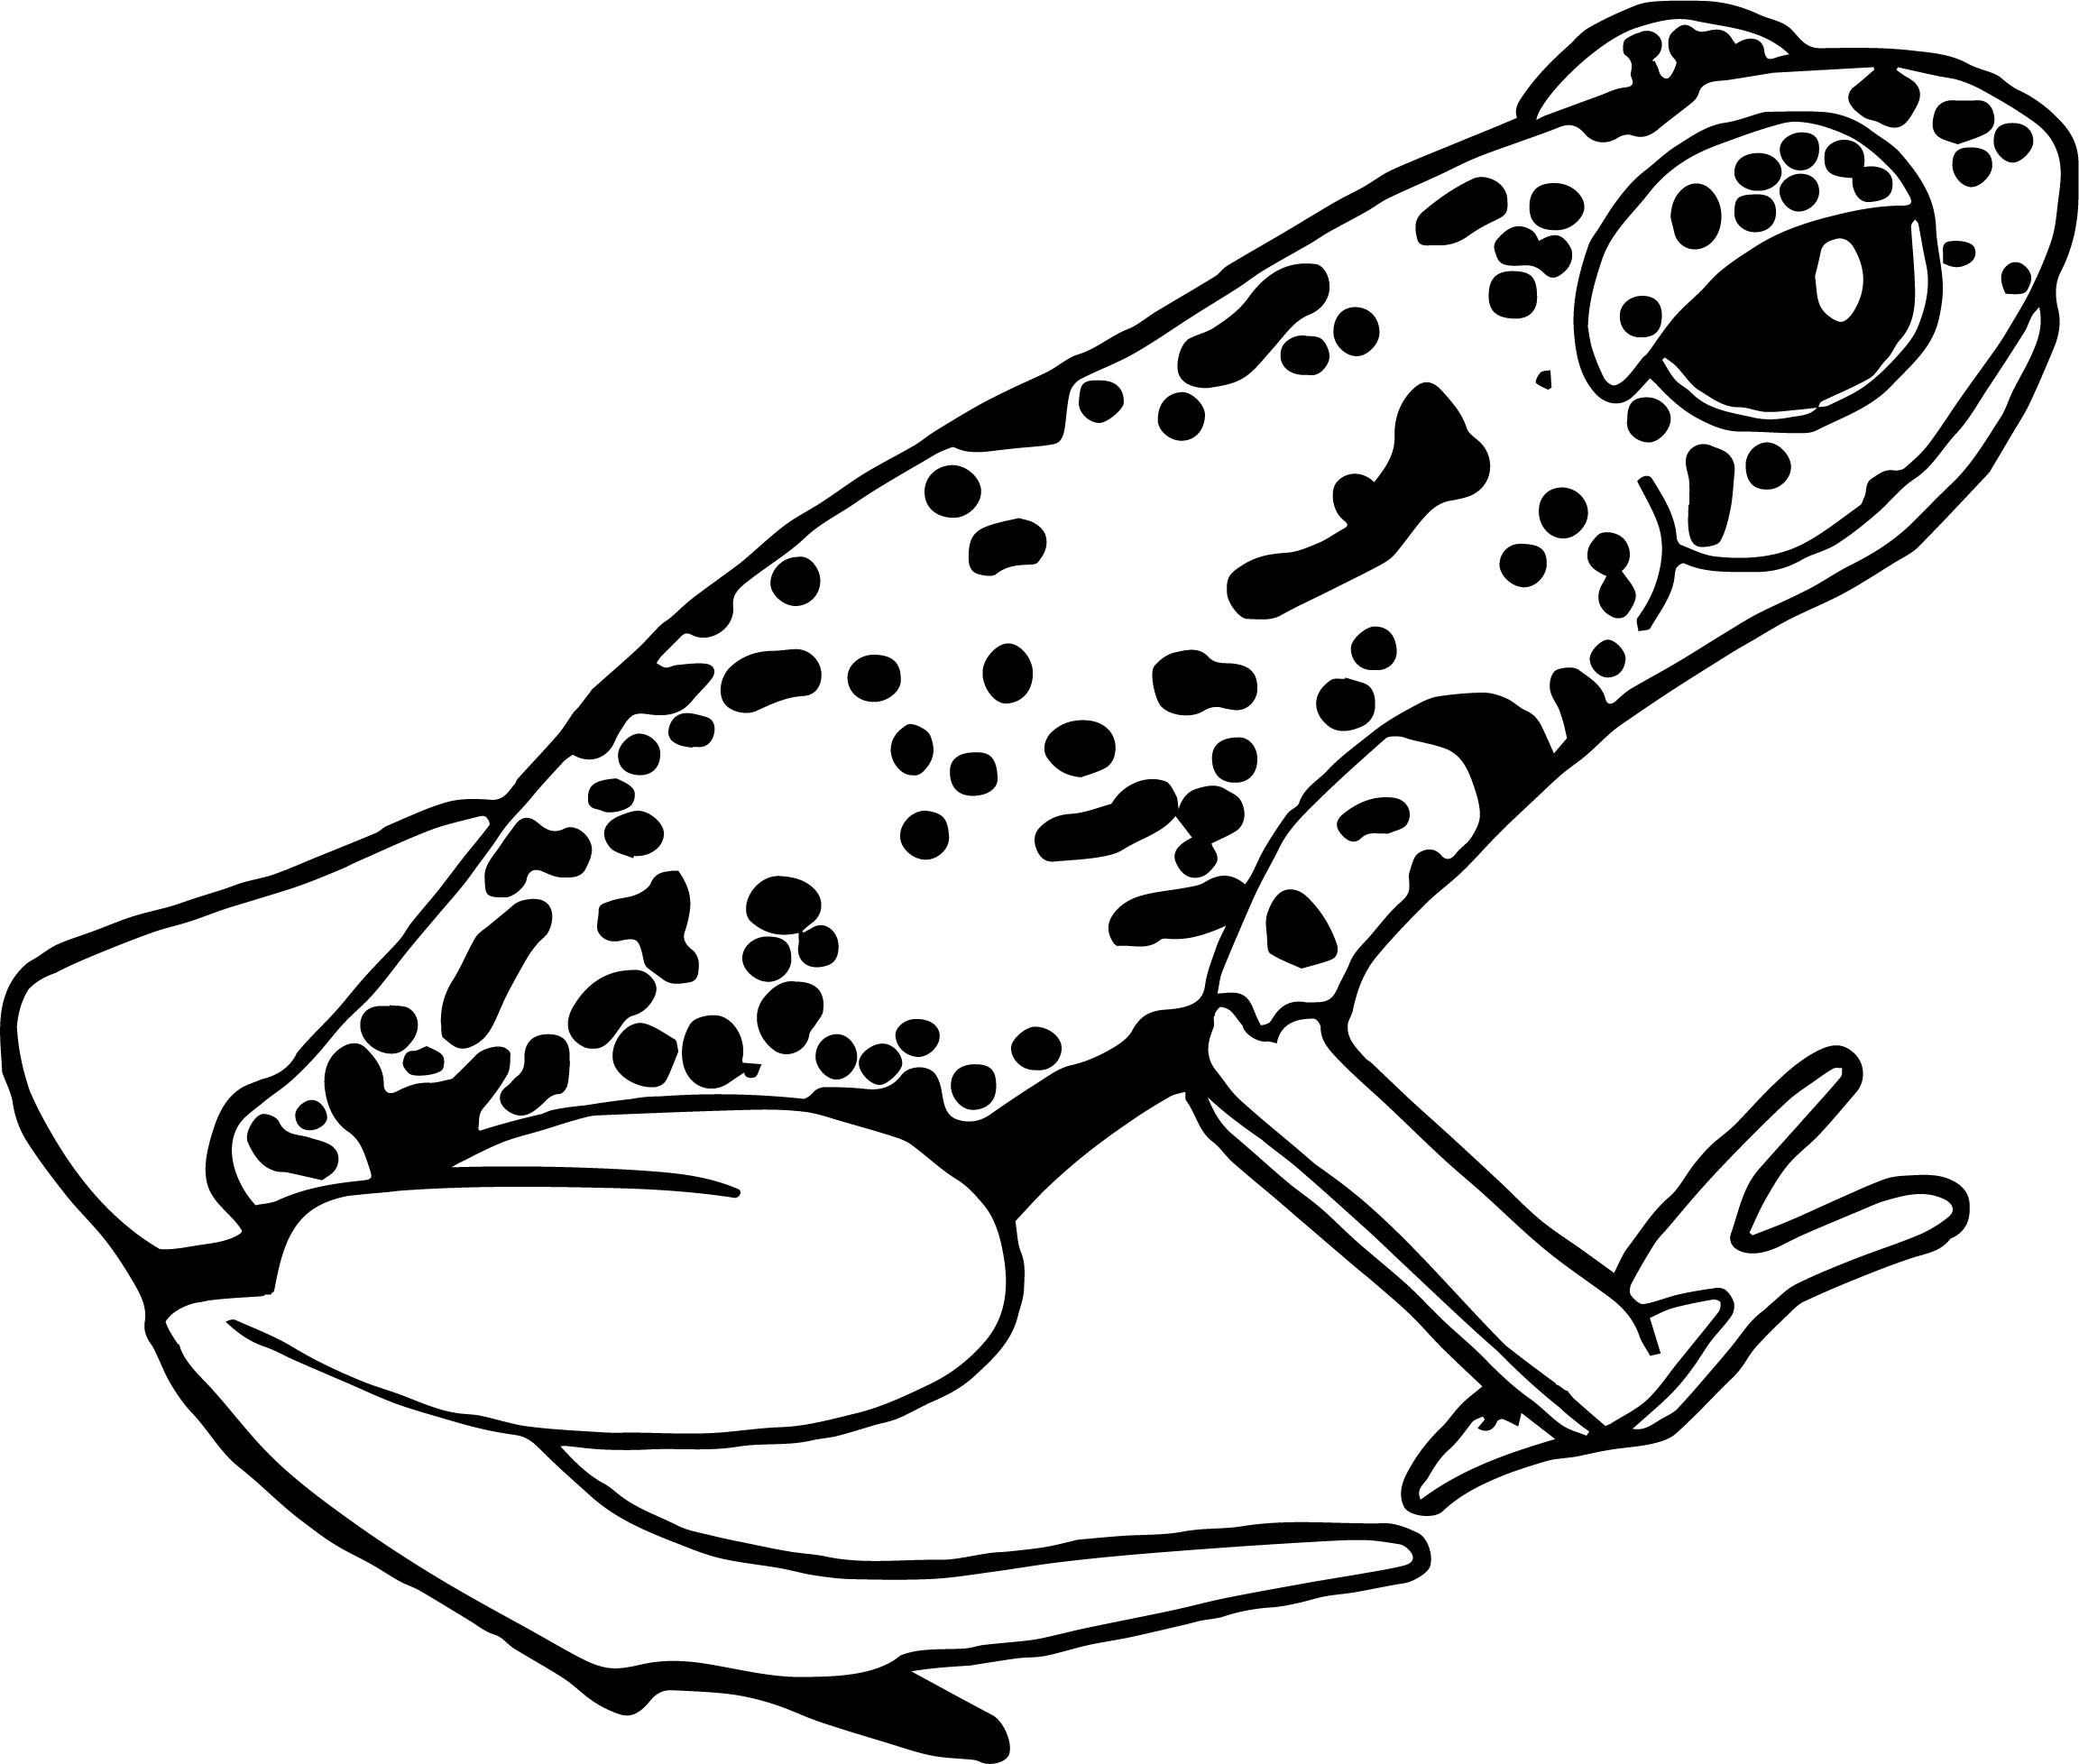 rainforest amphibian coloring page wecoloringpage